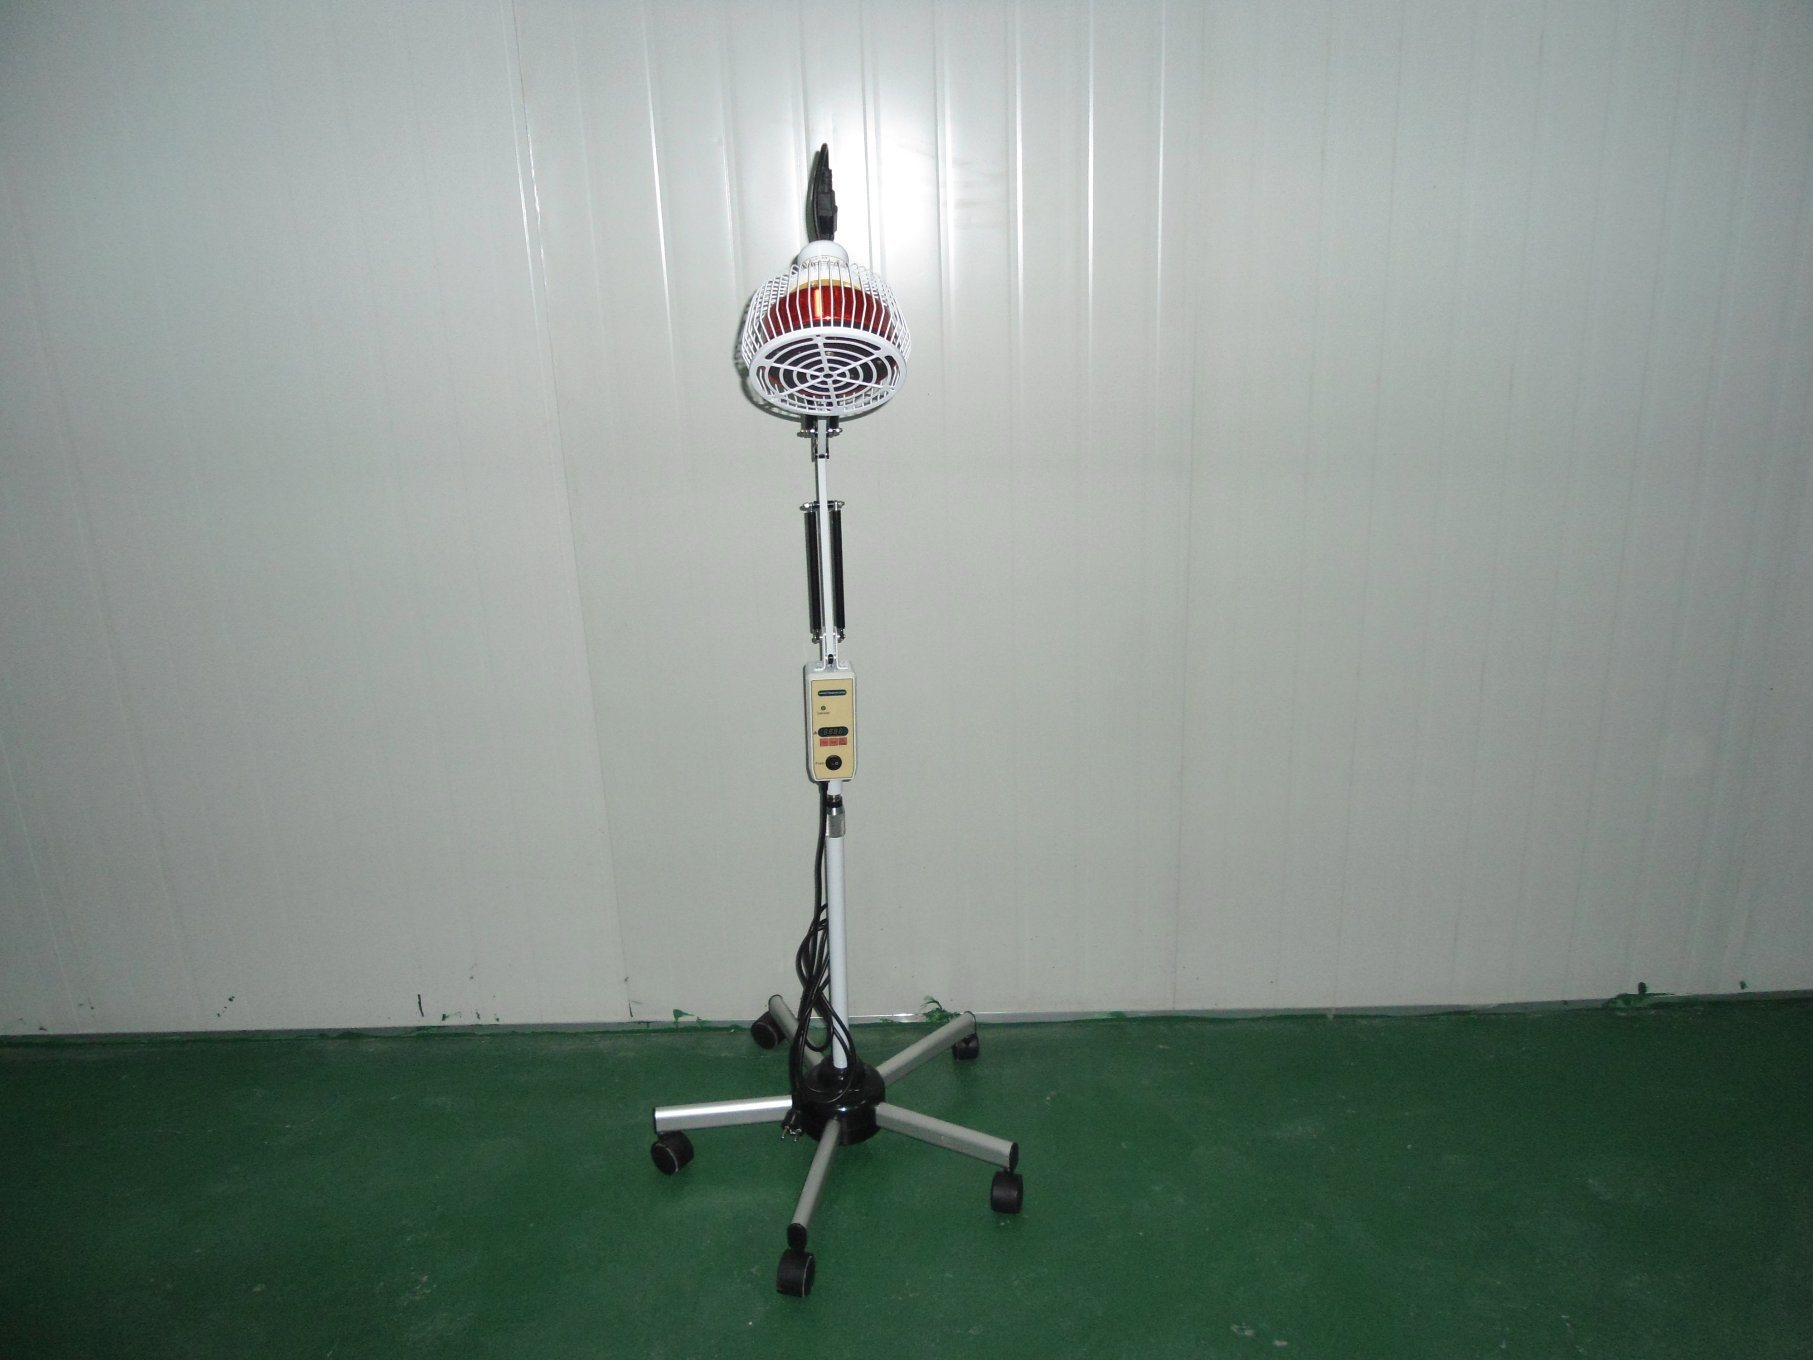 Tdp Lamp (CQ-27) , Healing Lamp, Therapy Lamp for Common Cold, Impotence and Premature Ejaculation, etc.